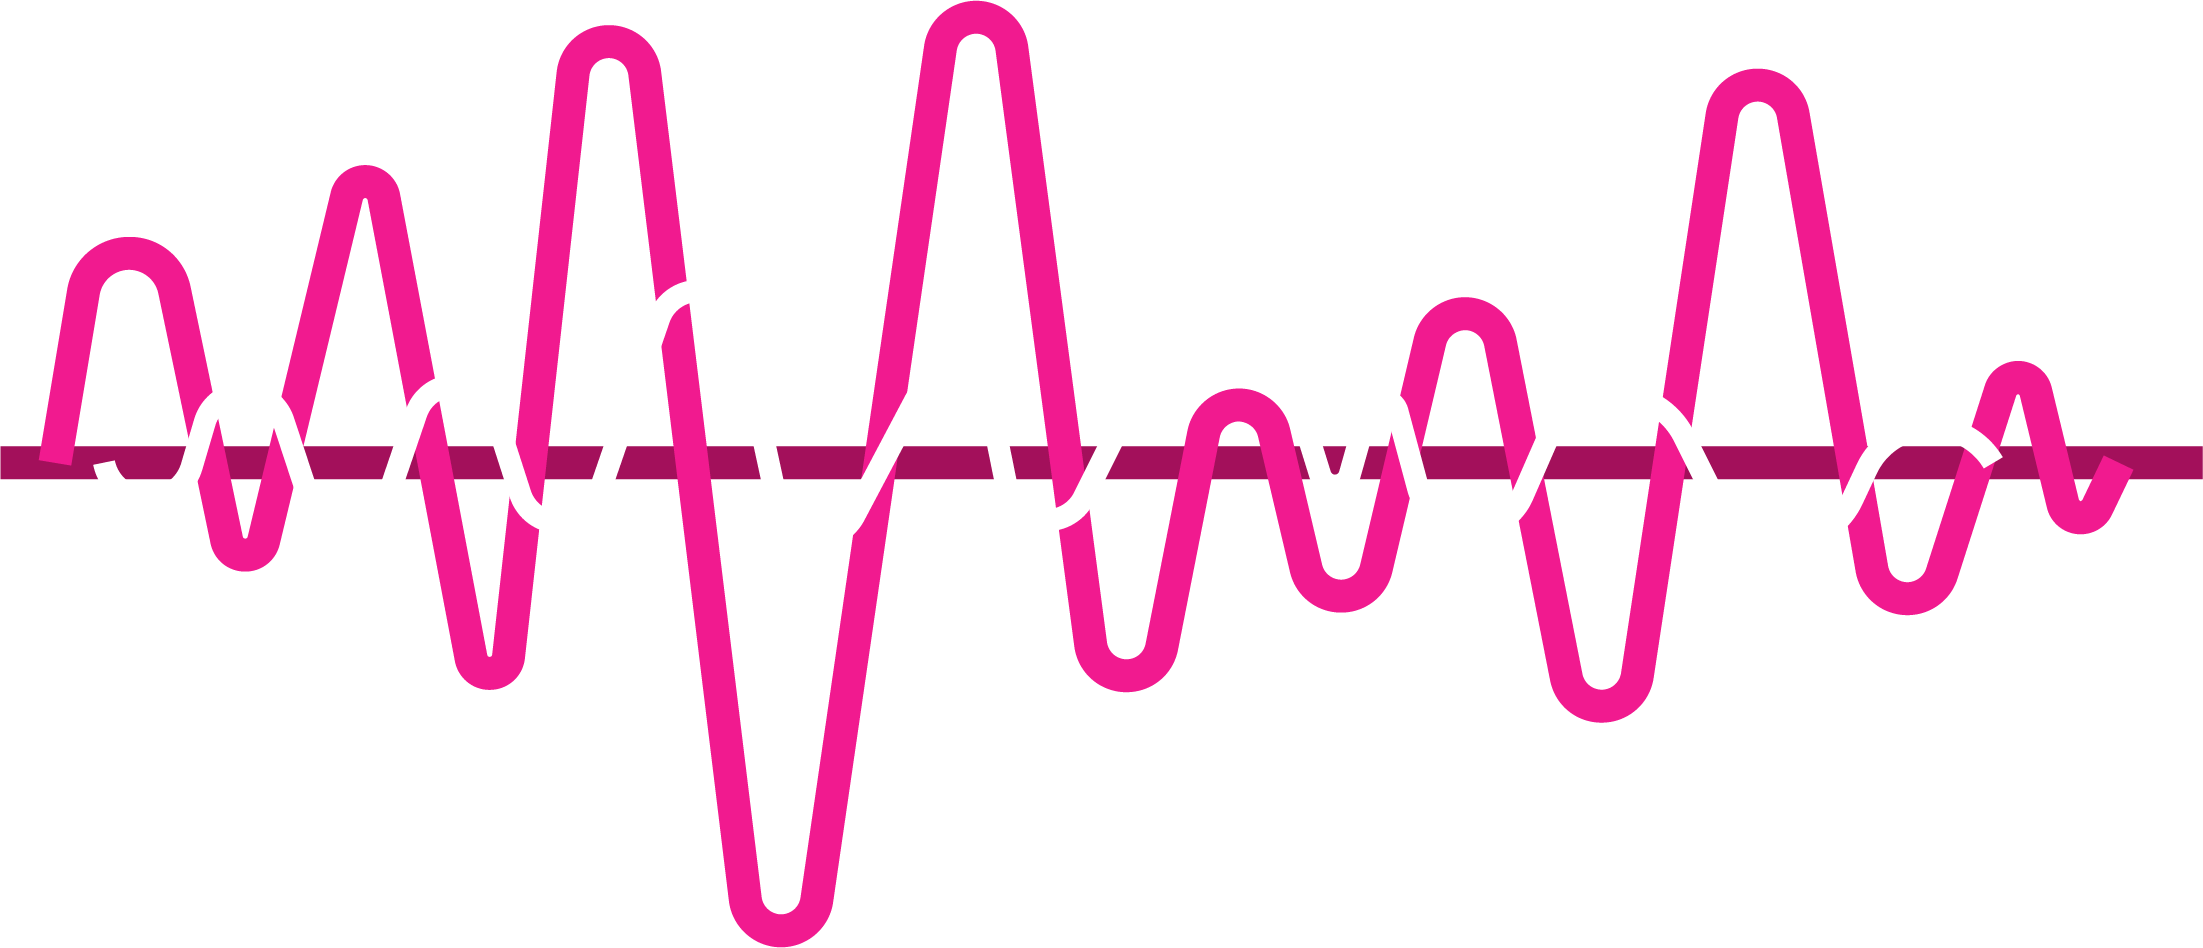 Heartbeat lines png. Frequency sound icon line